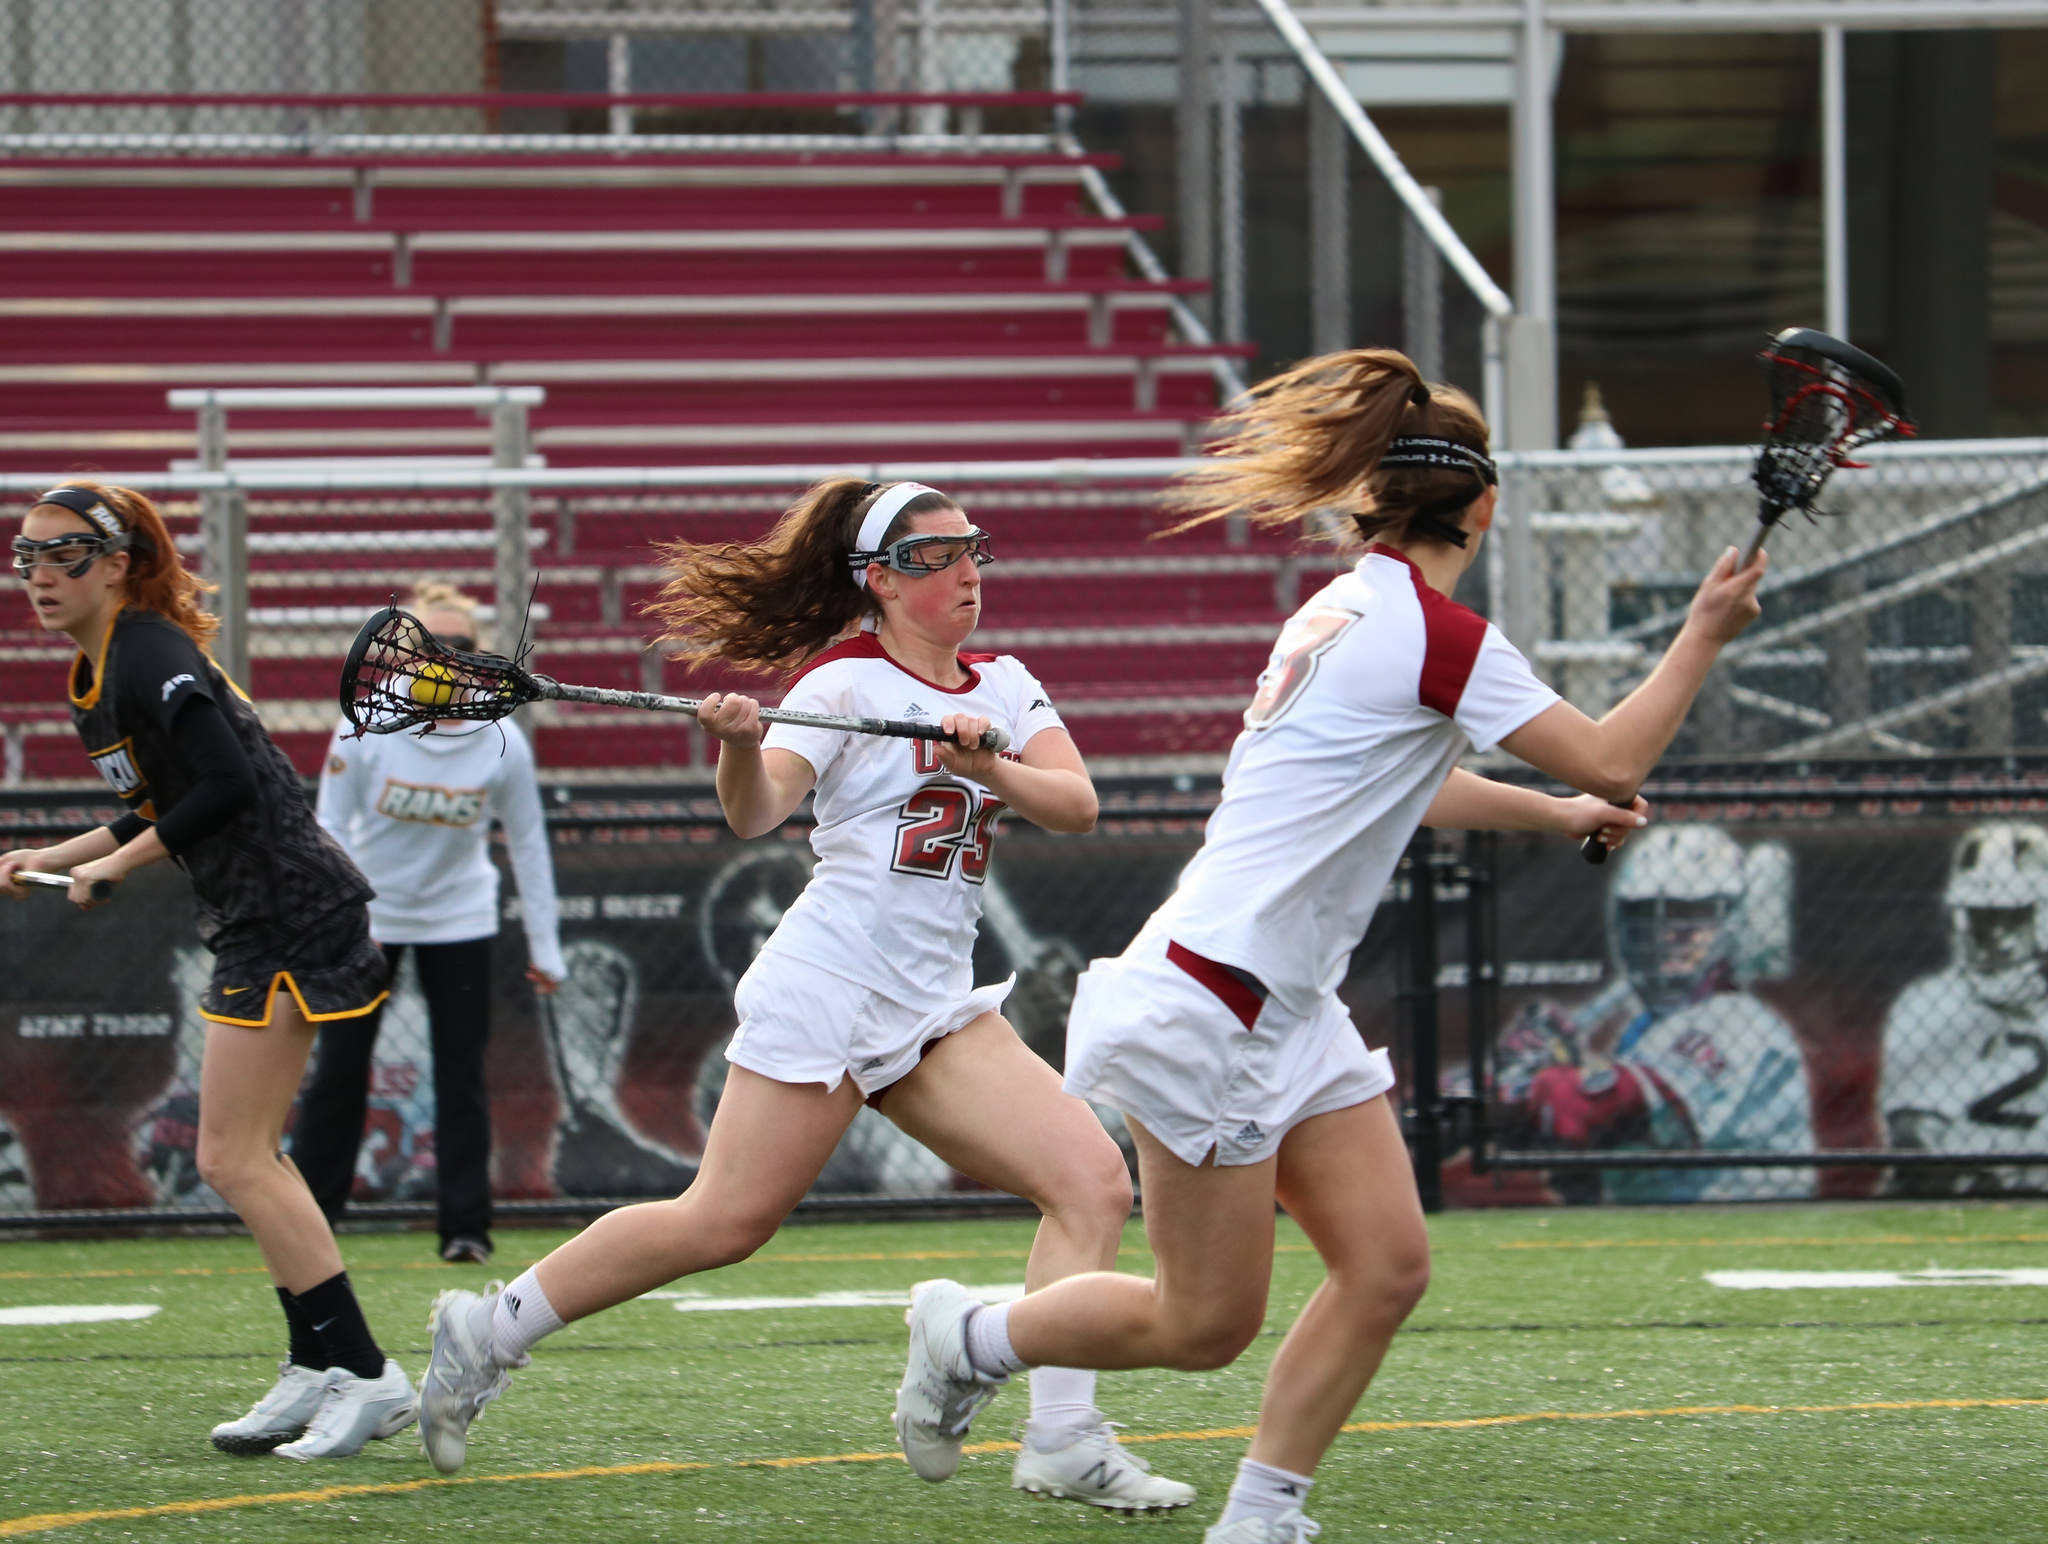 UMass women's lacrosse keeps A-10 win streak alive with big win over VCU